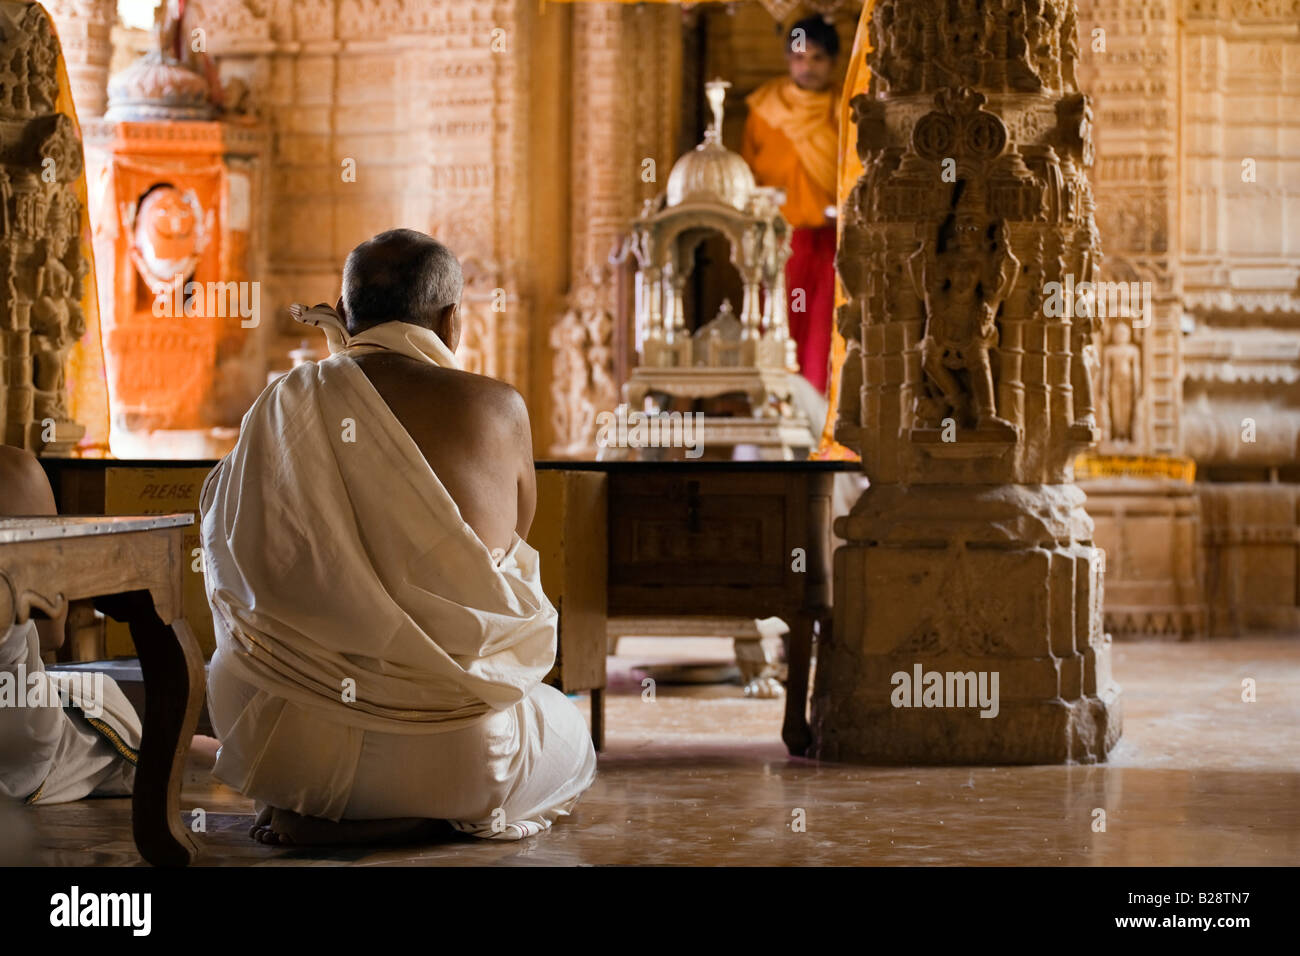 How to Pray in Jain Temples